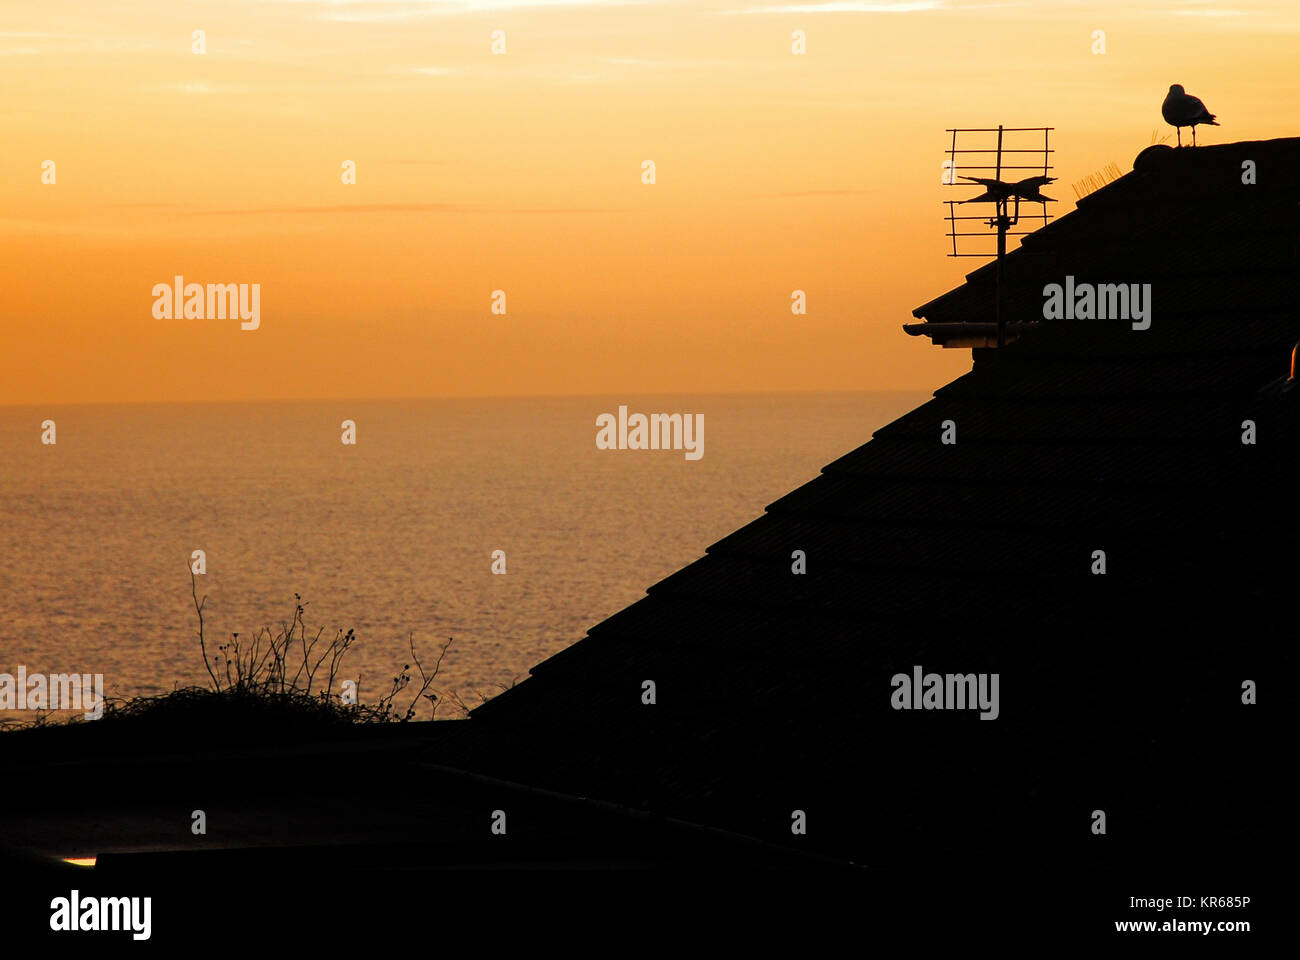 Portland, Dorset. 19th December 2017 - A seagull roosts on a Portland rooftop as the sun sets over Lyme Bay Credit: - Stock Image